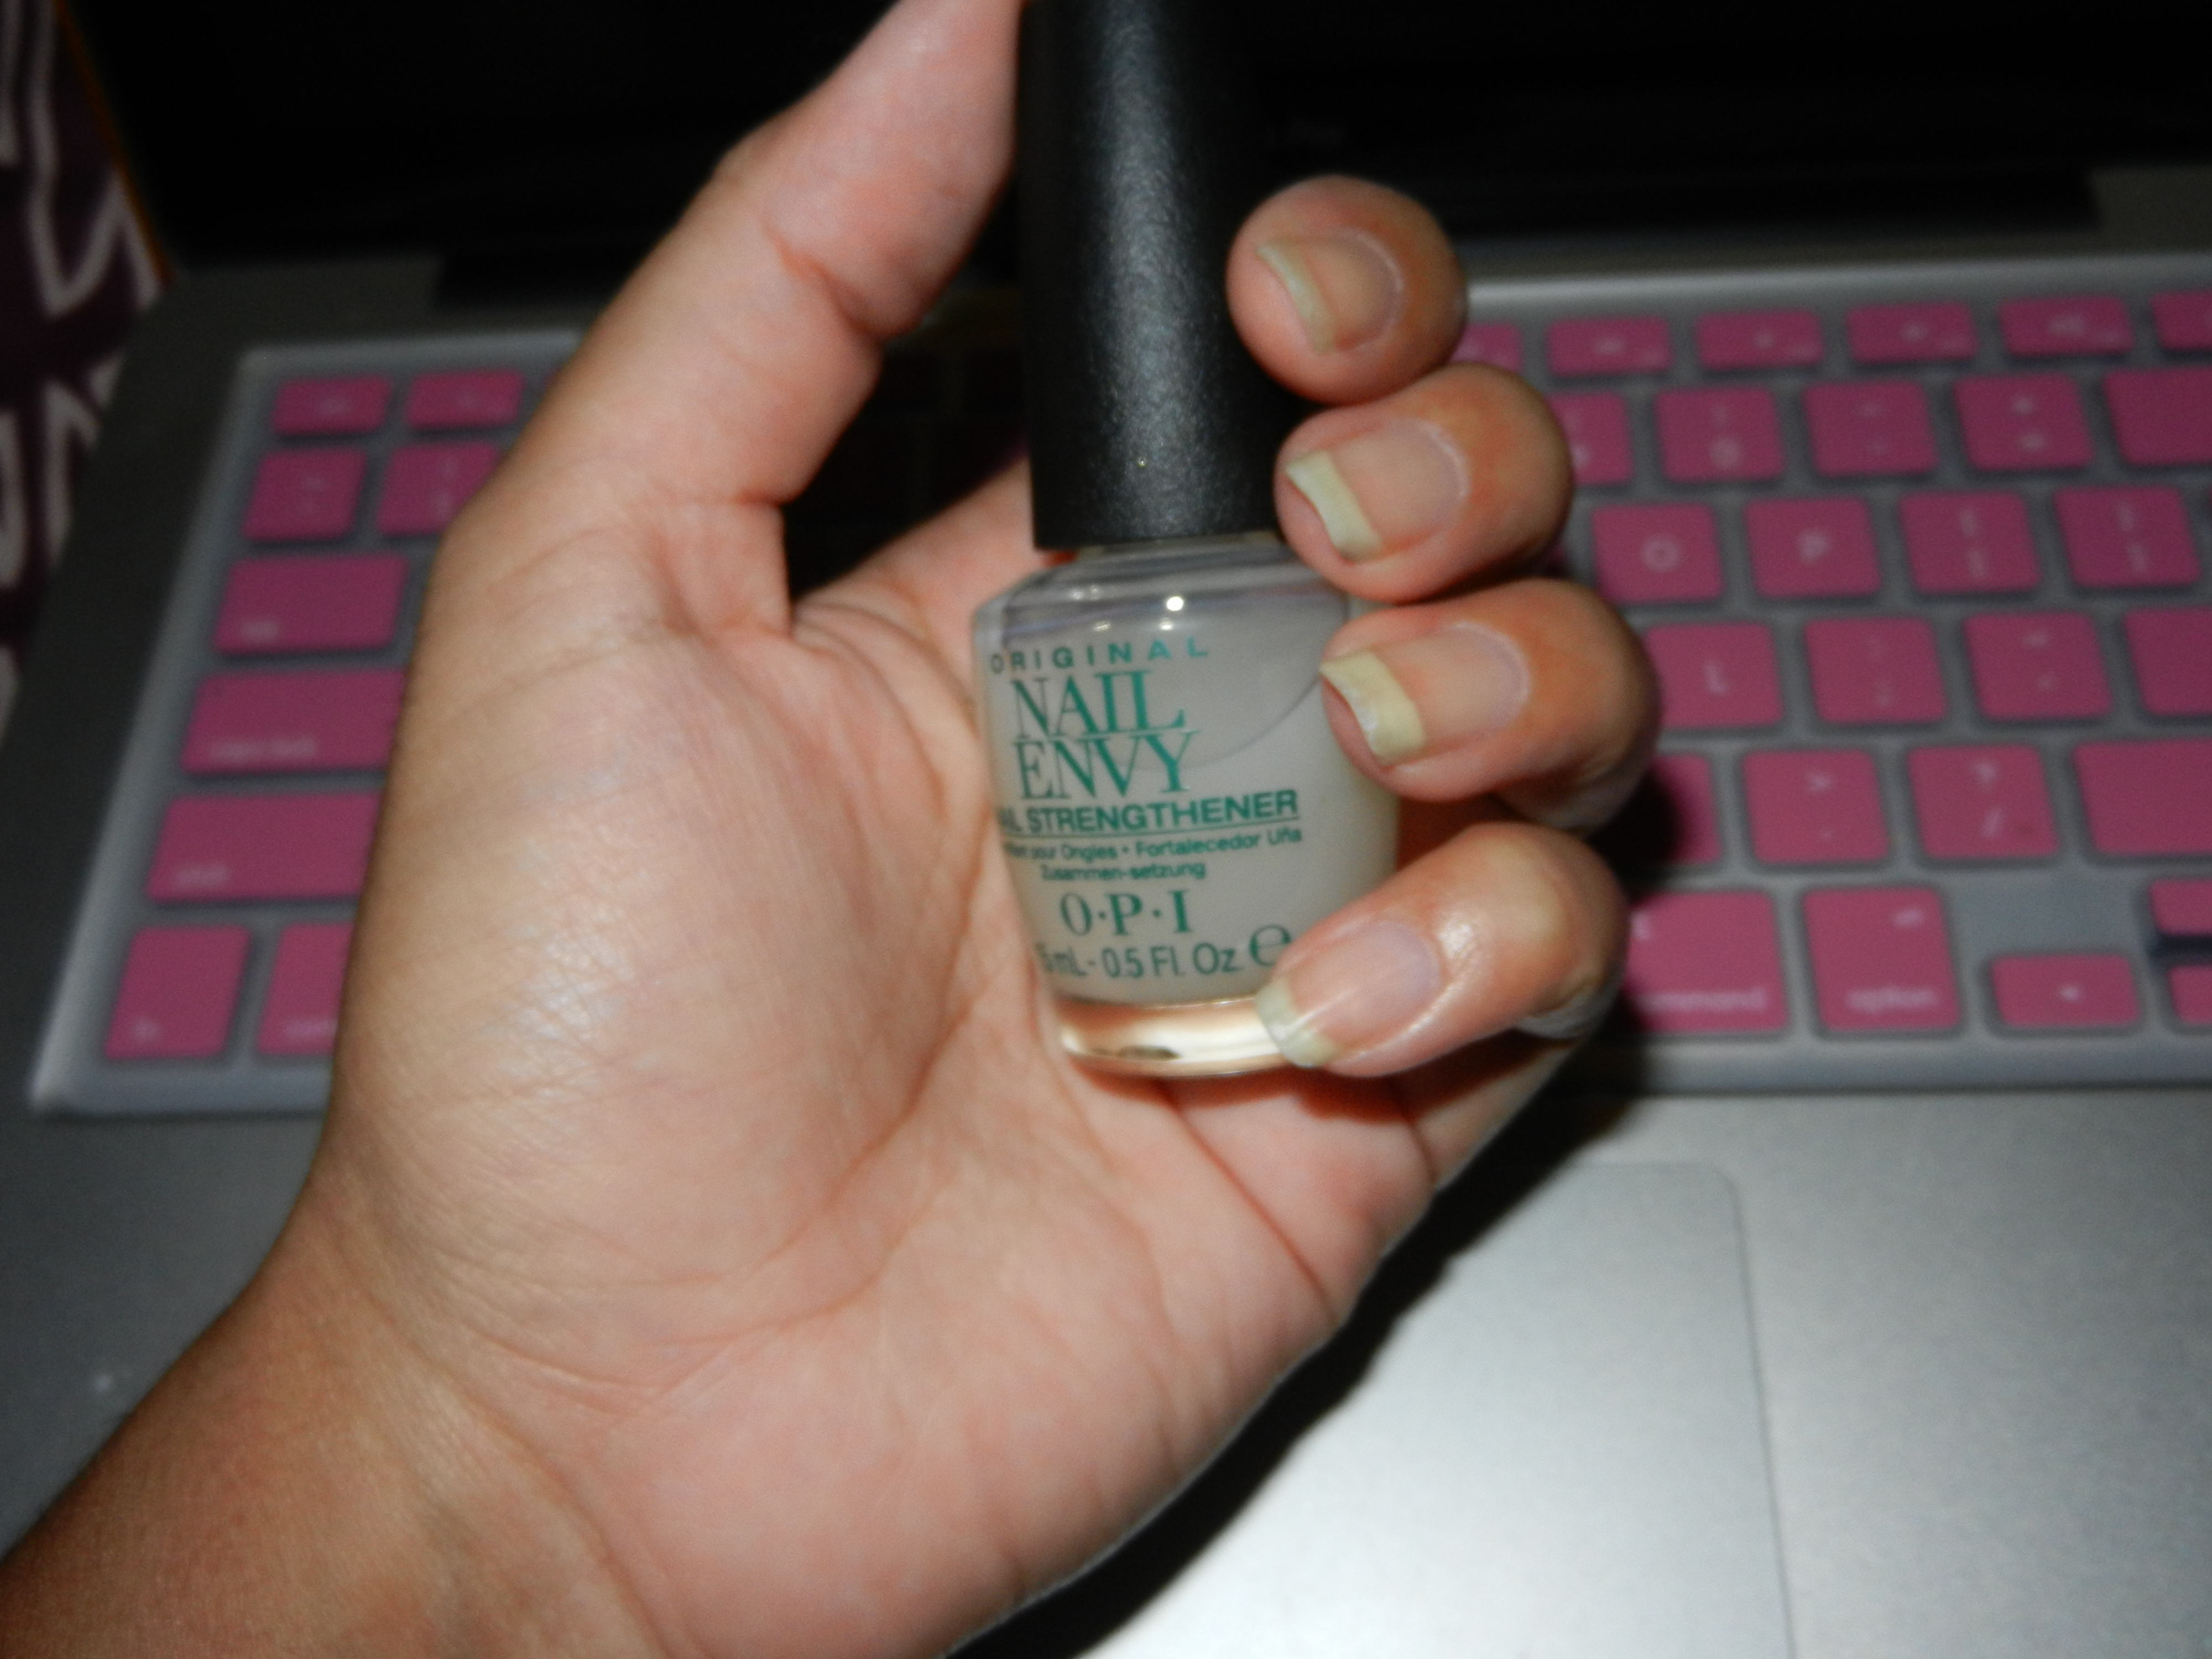 Nails: Length and Strength, OPI and Essie trial and review   Glitter ...